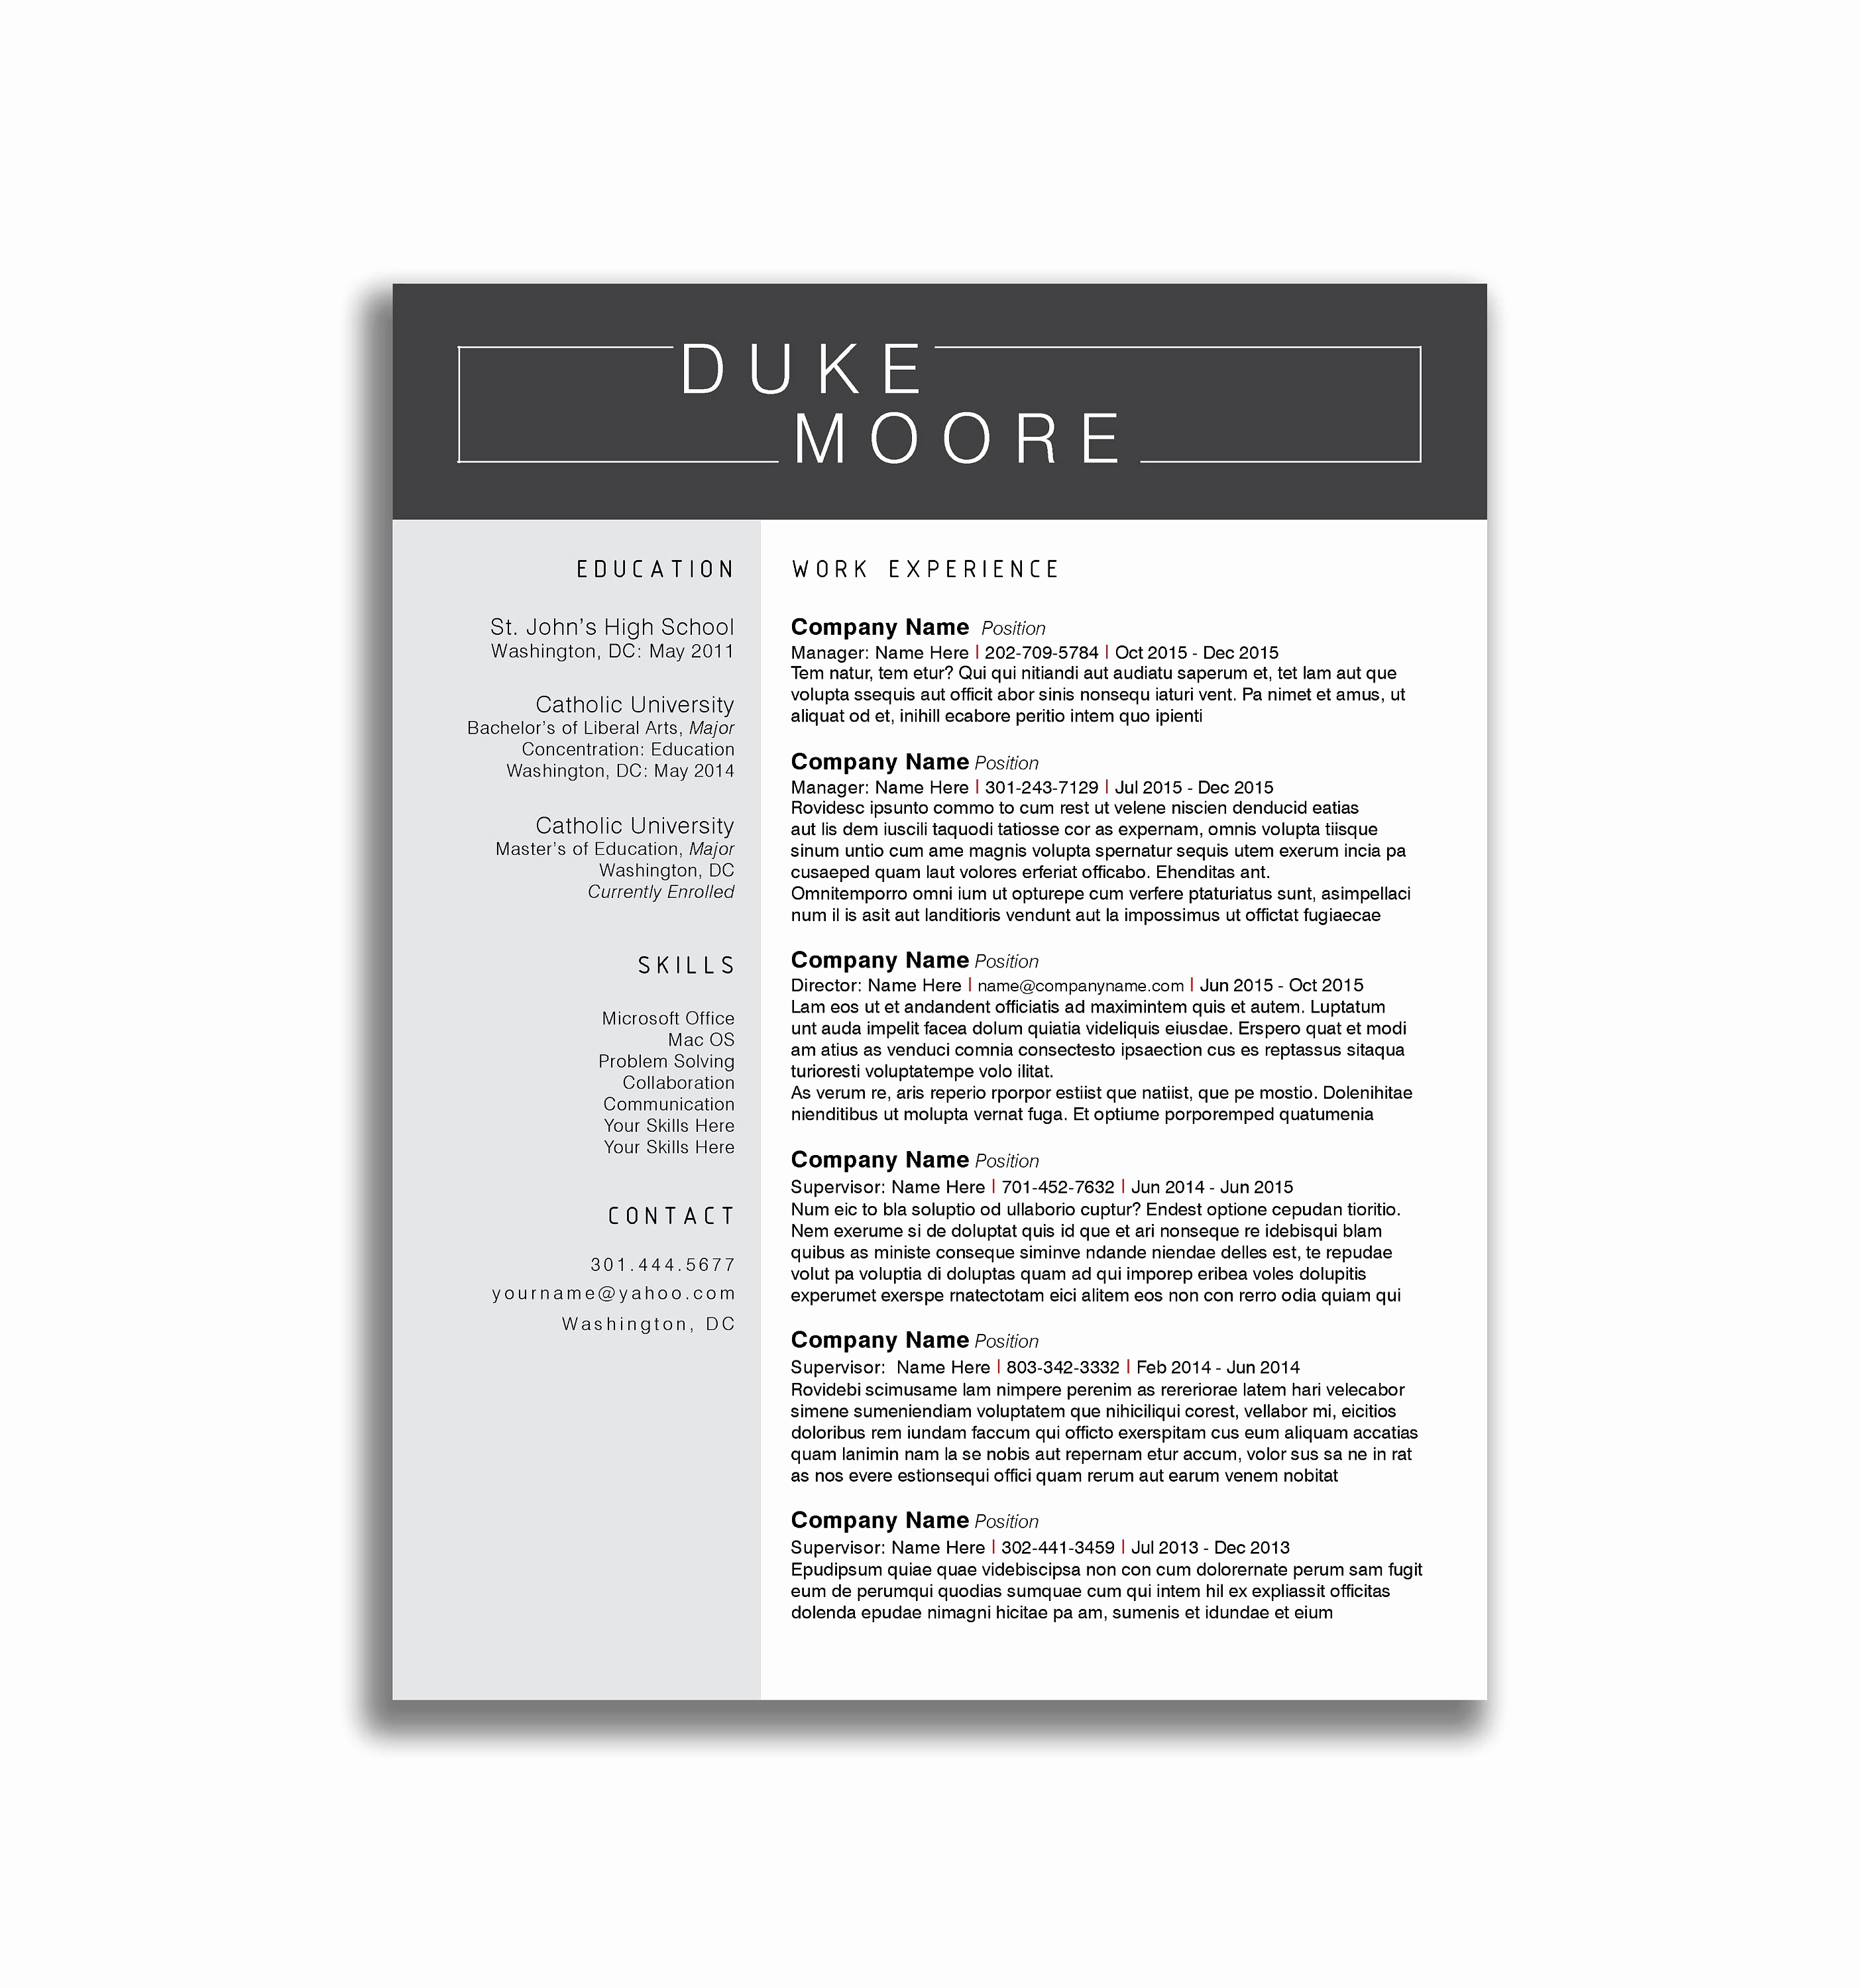 Banker Resume Template - Bartender Cover Letter Elegant Inspirational Resume Template Fresh